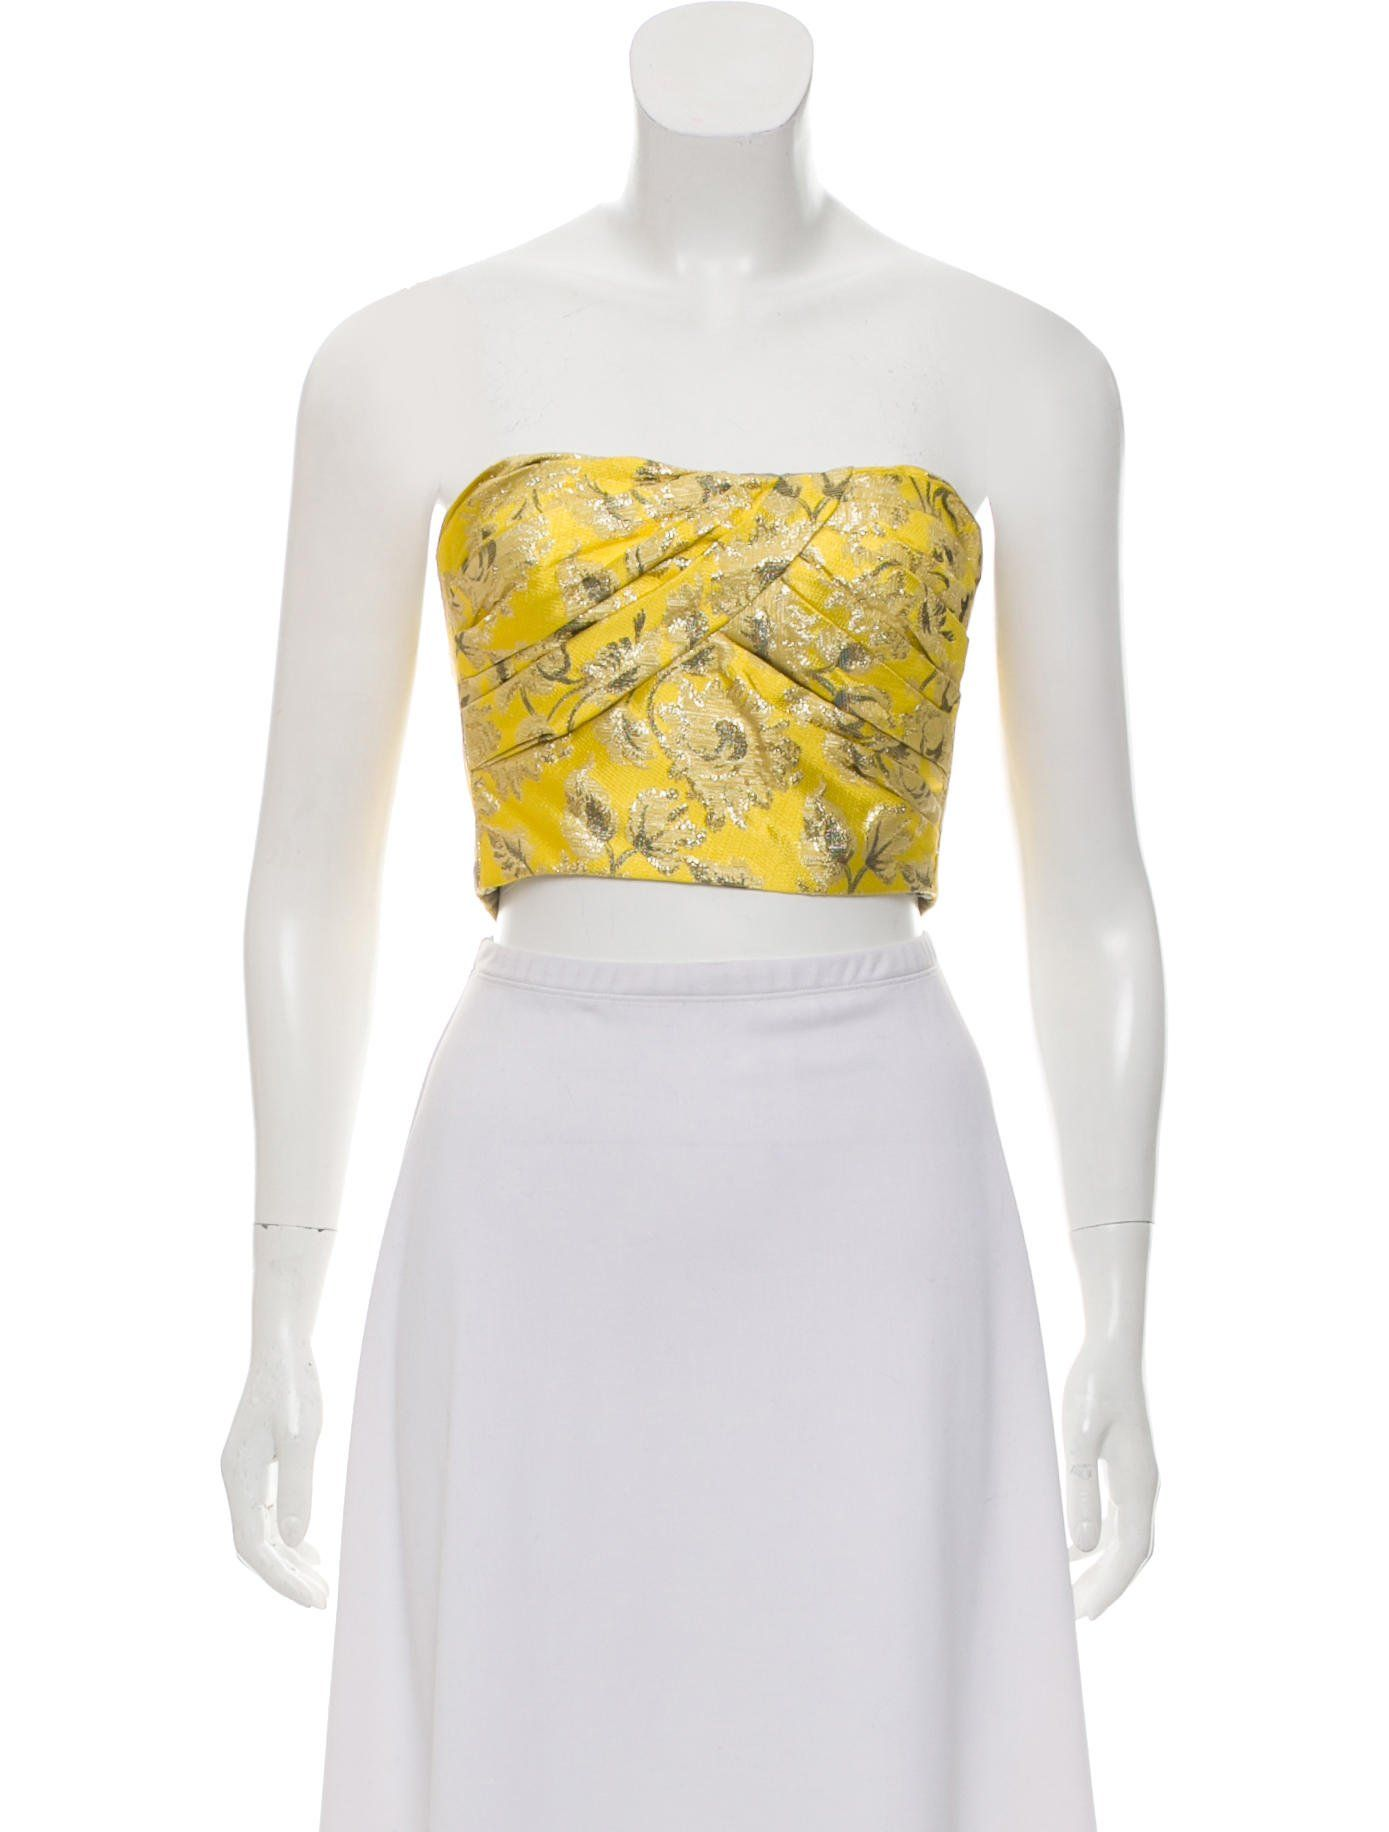 b7d87aedef1d64 Yellow and metallic gold brocade Prada strapless crop top with pleated  accents at bust and concealed